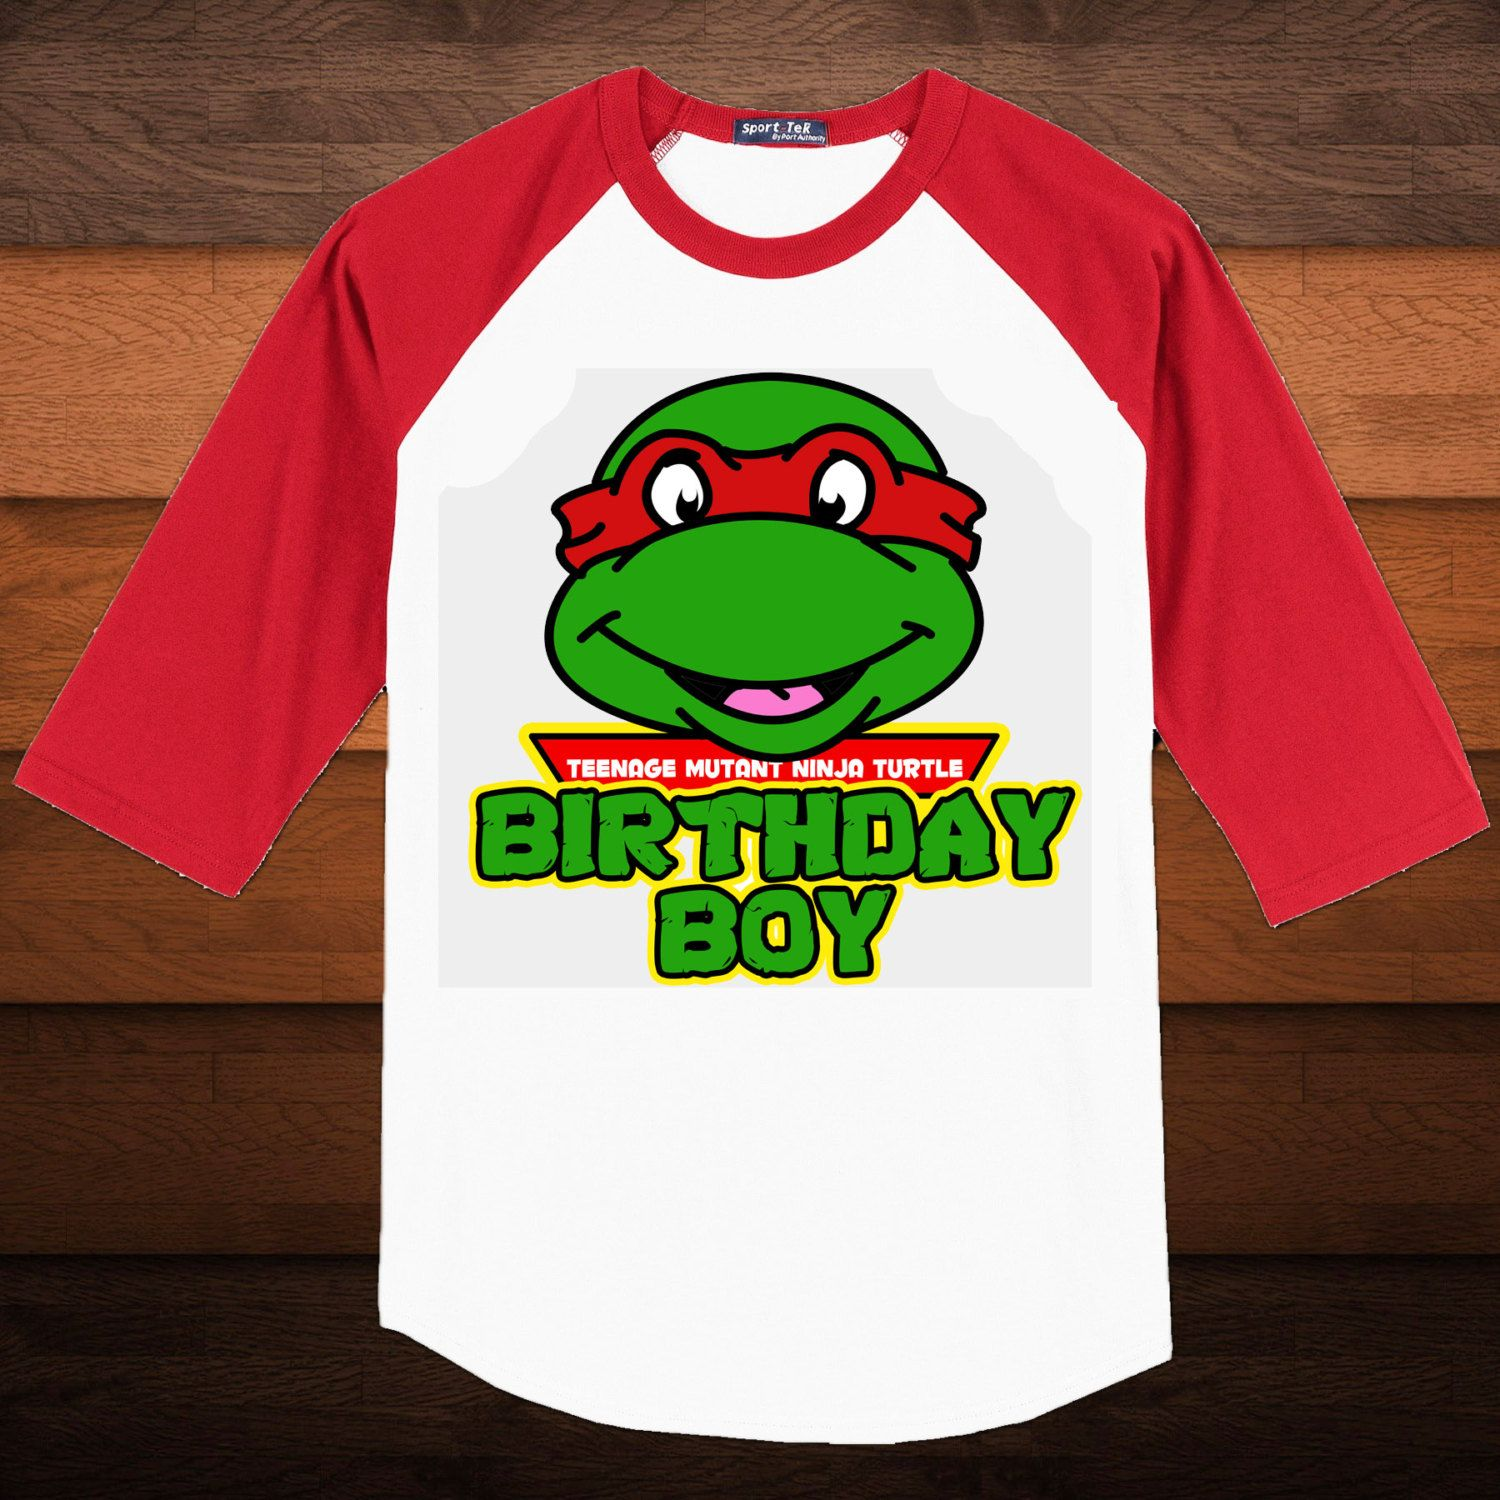 Pin By Lisa Youssef On Tmnt Party Ninja Turtles Birthday Party Turtle Birthday Parties Teenage Mutant Ninja Turtles Birthday Party